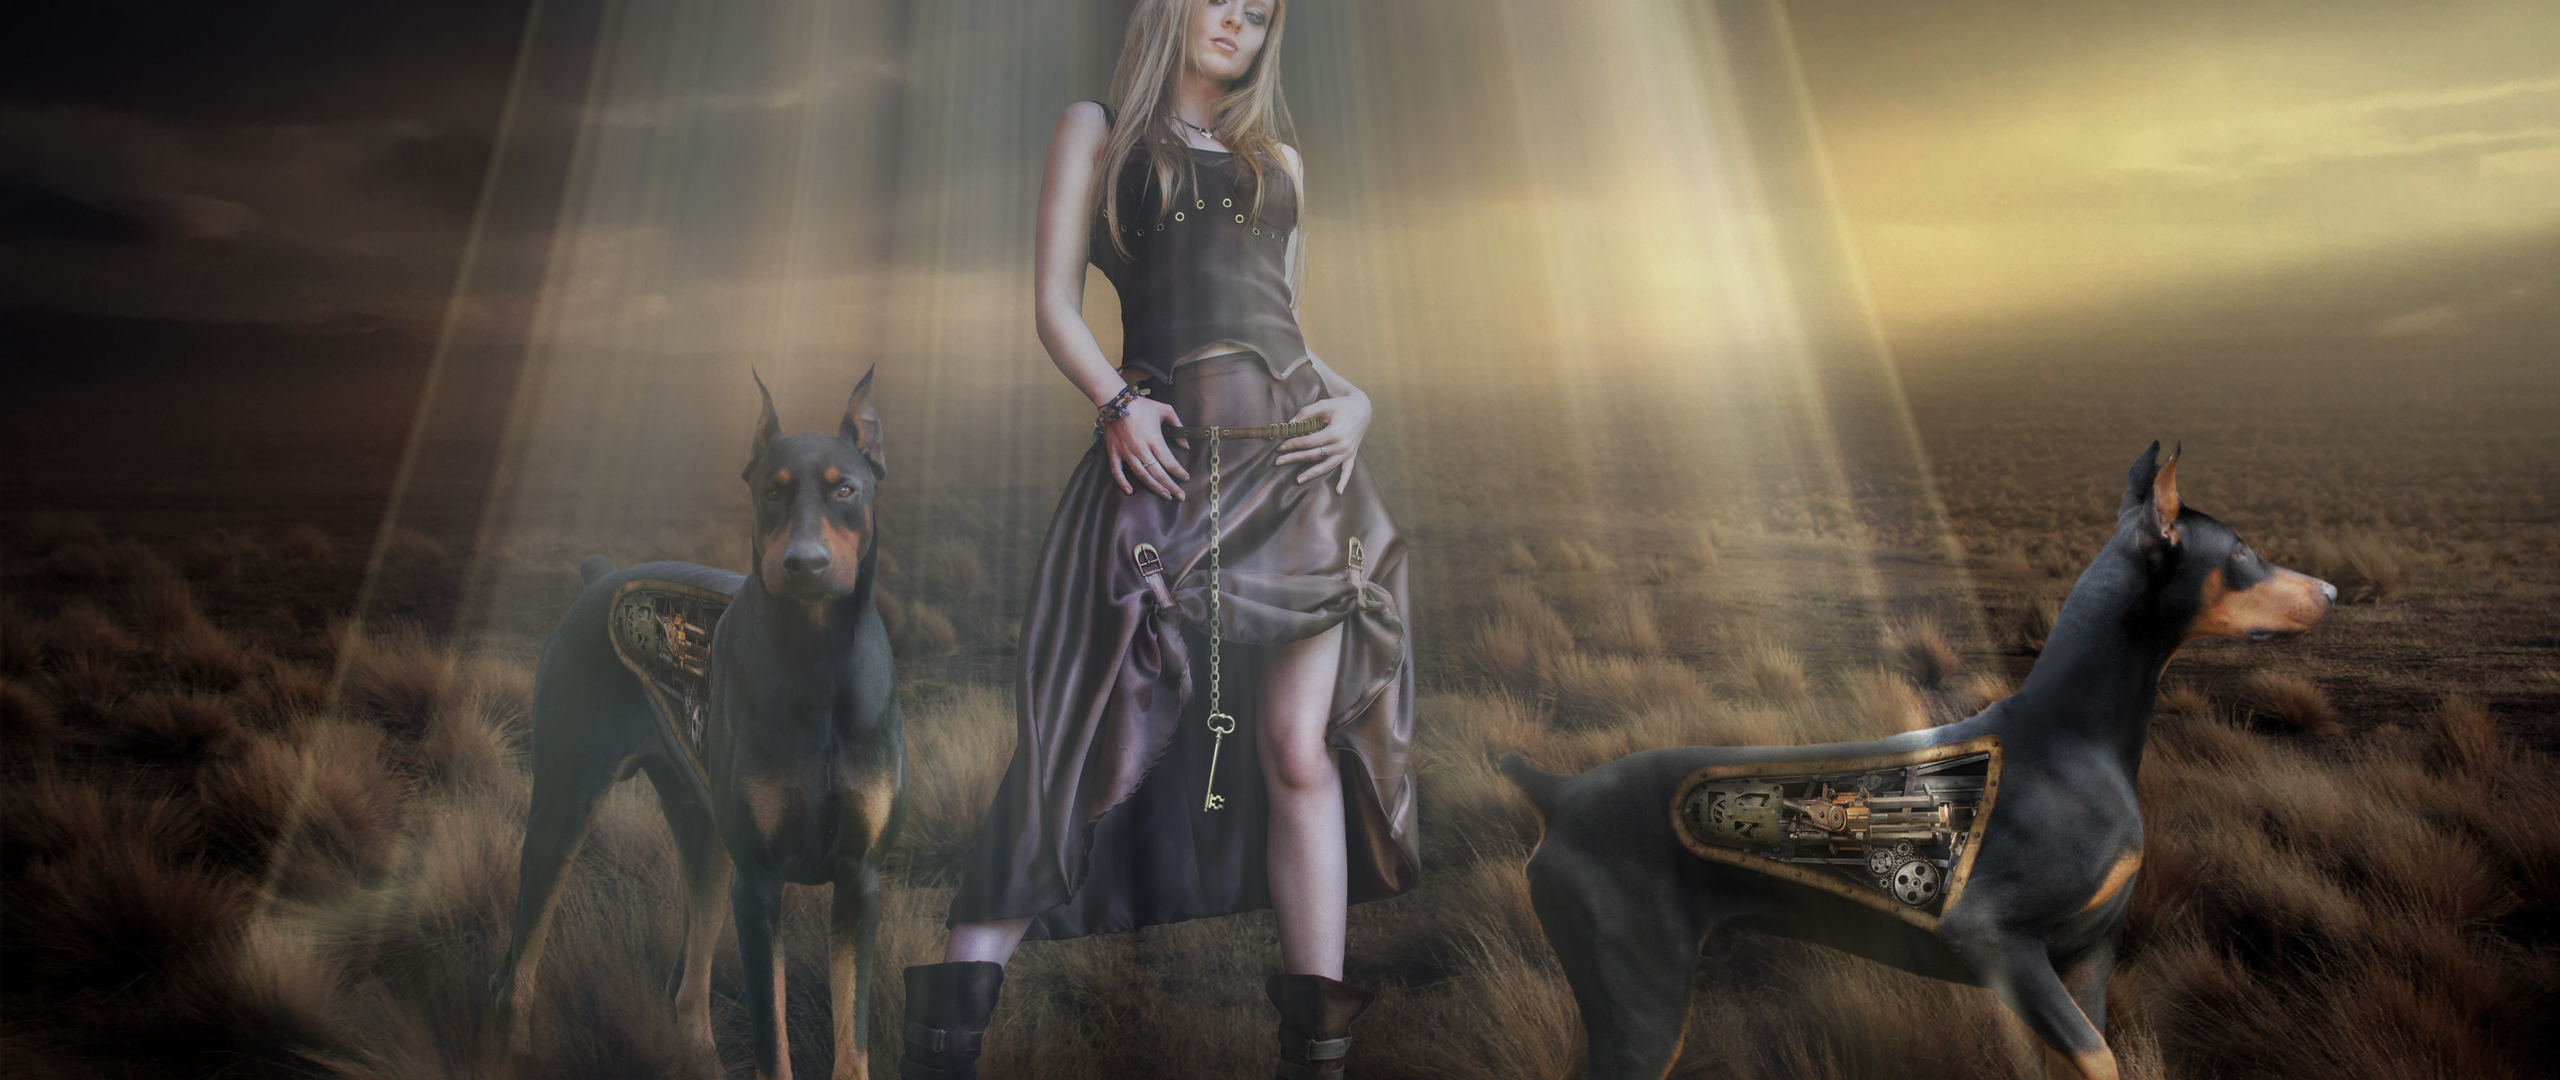 fantasy-women-with-dogs-new.jpg